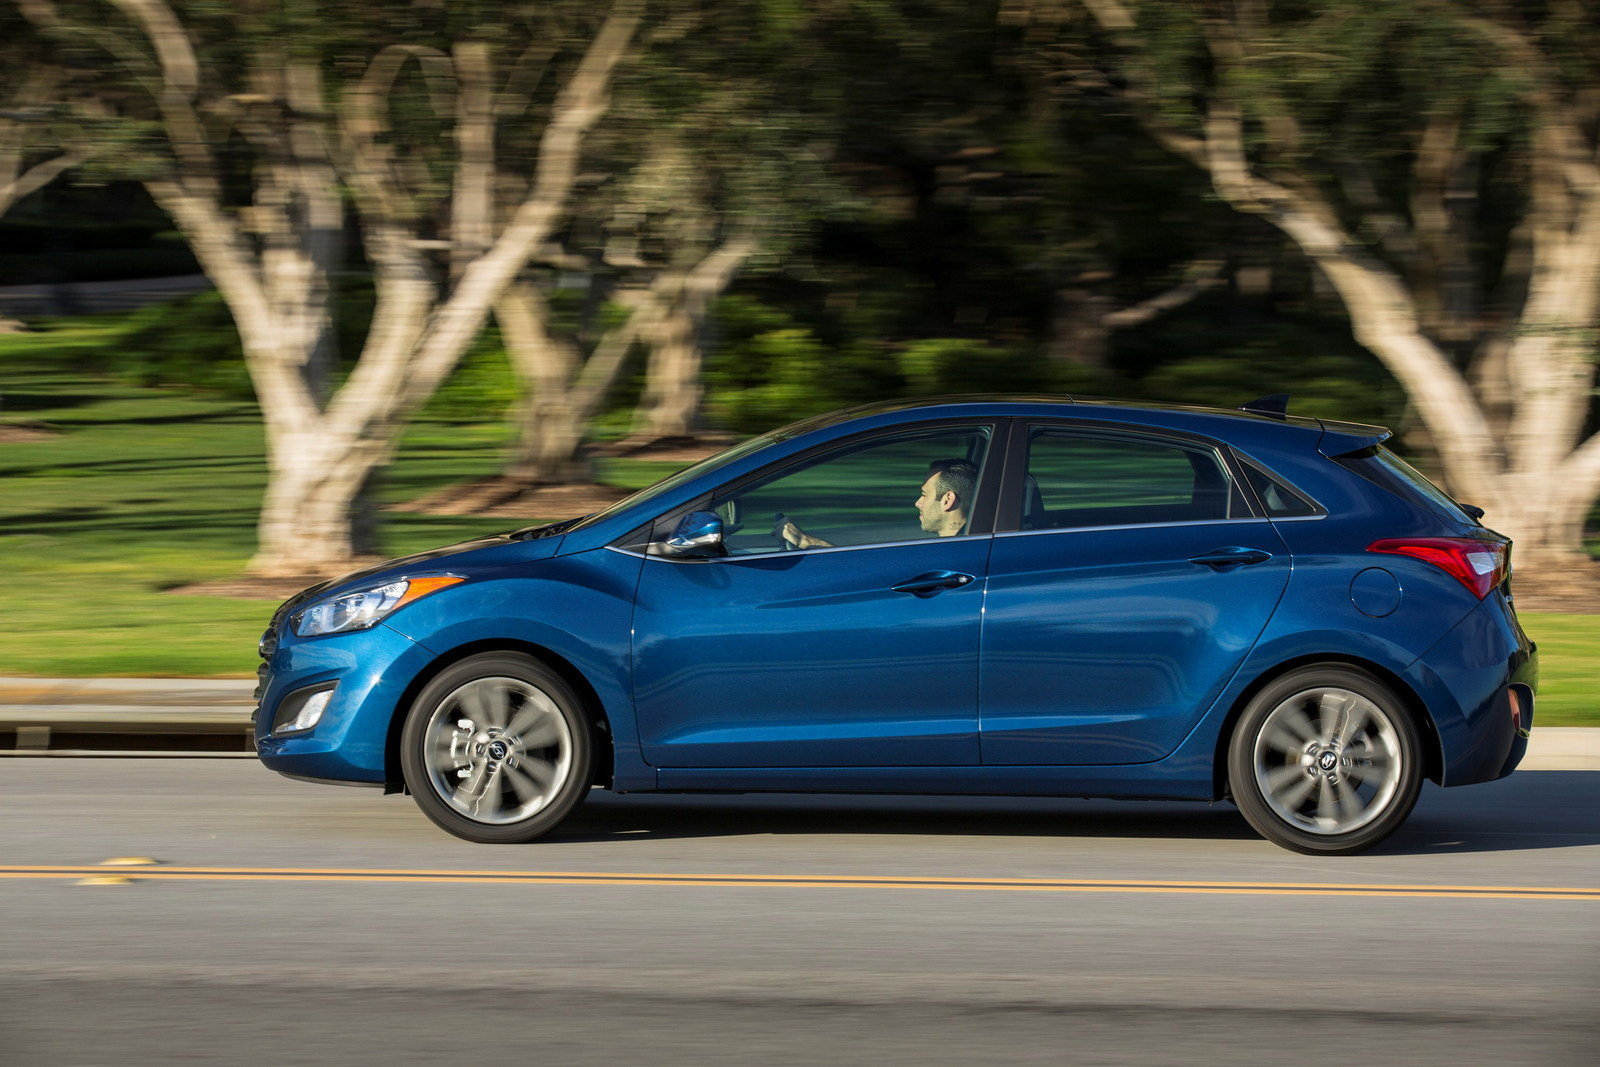 2016 hyundai elantra gt picture 617136 car review top speed. Black Bedroom Furniture Sets. Home Design Ideas